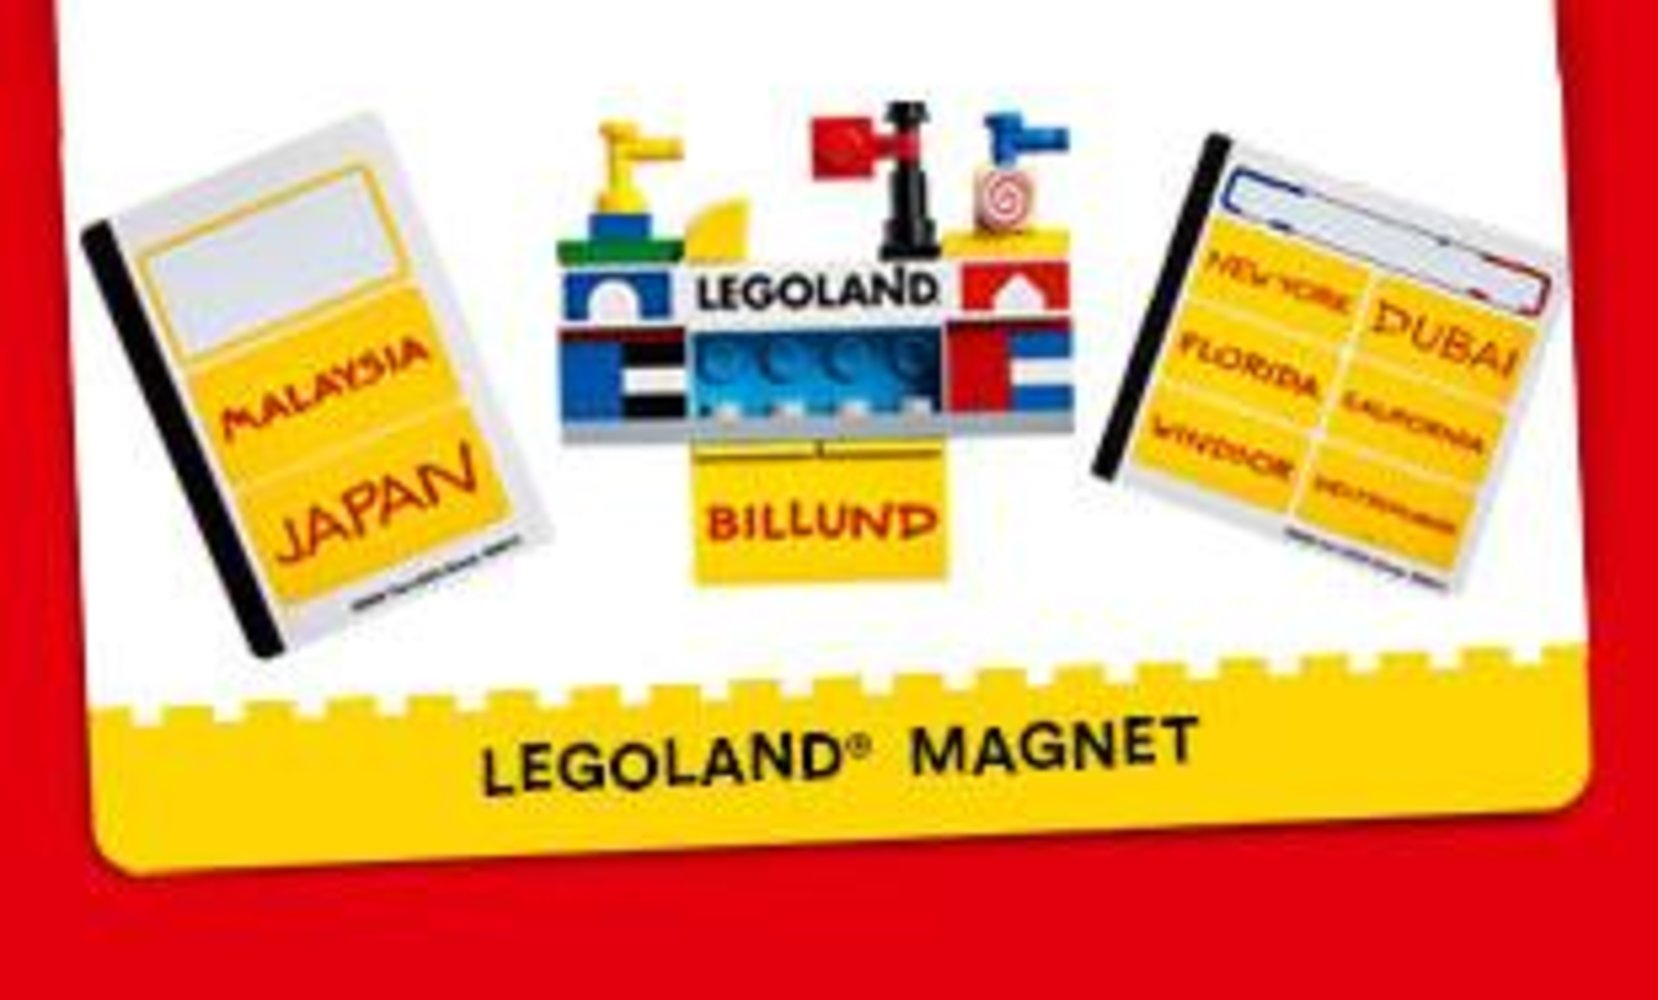 LEGOLAND Build Magnet